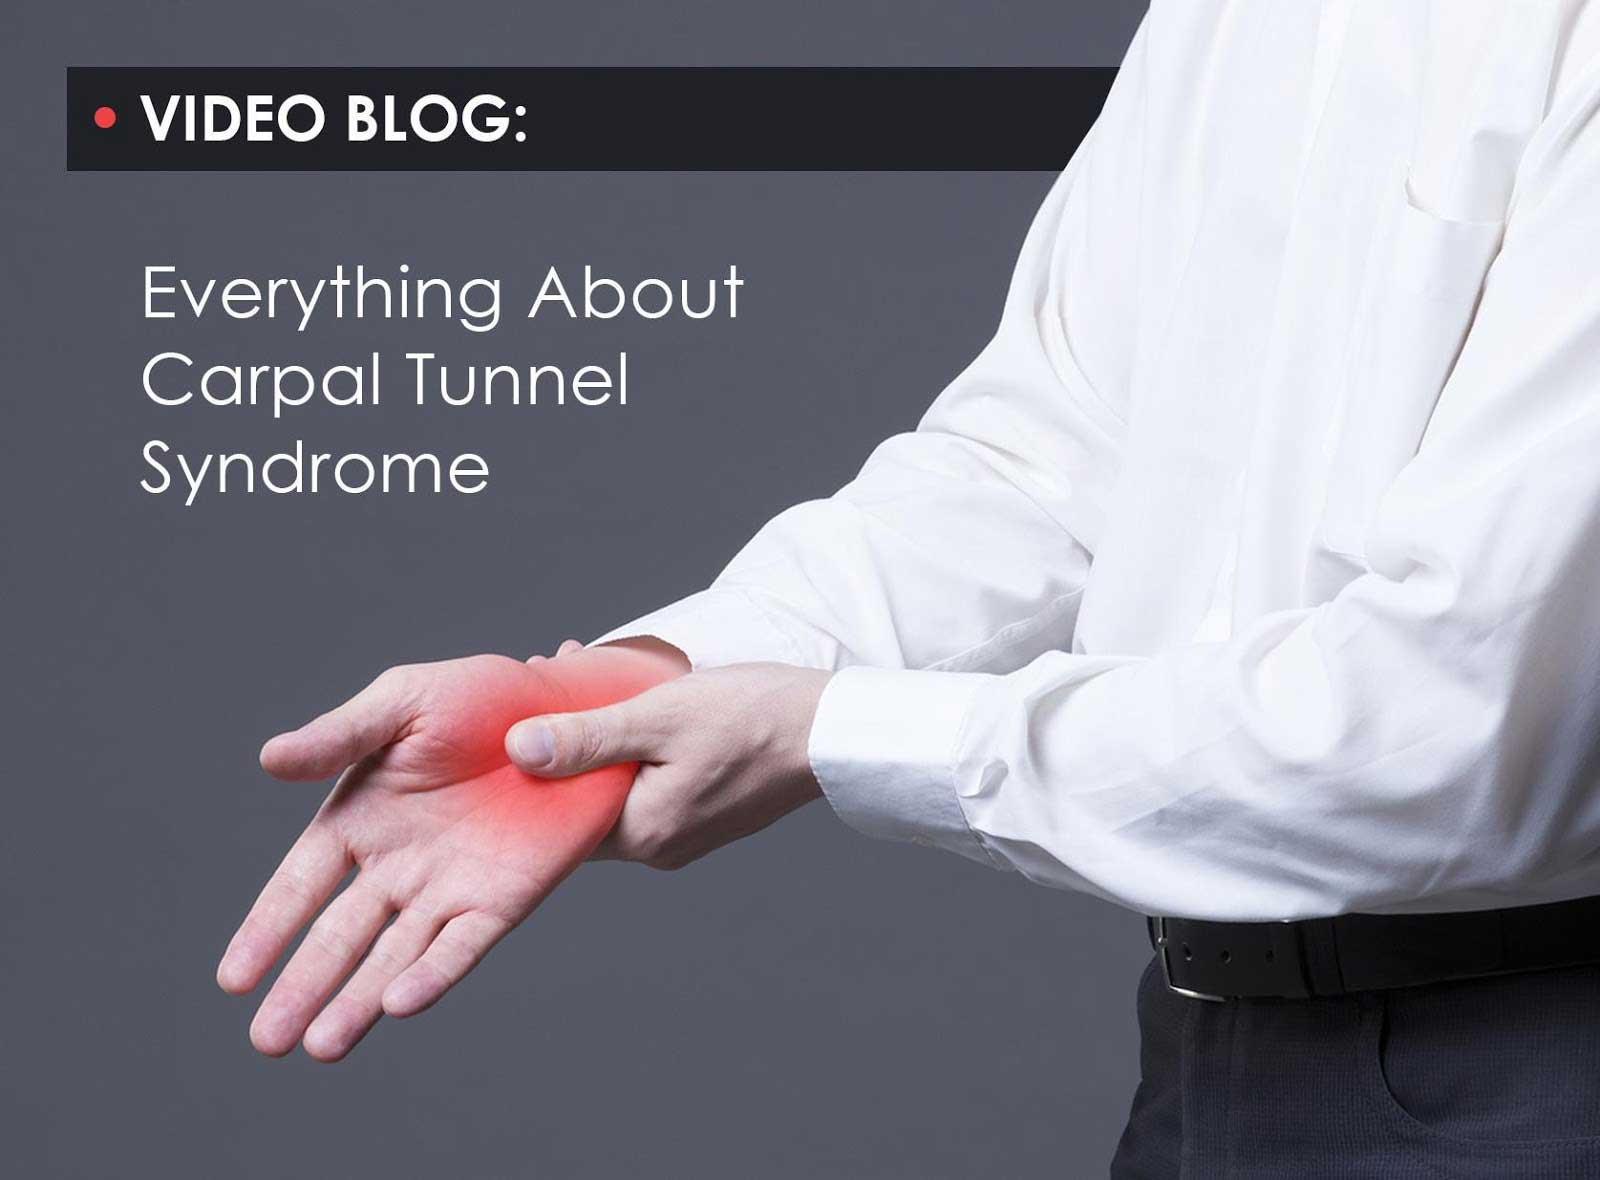 Video Blog: Everything About Carpal Tunnel Syndrome